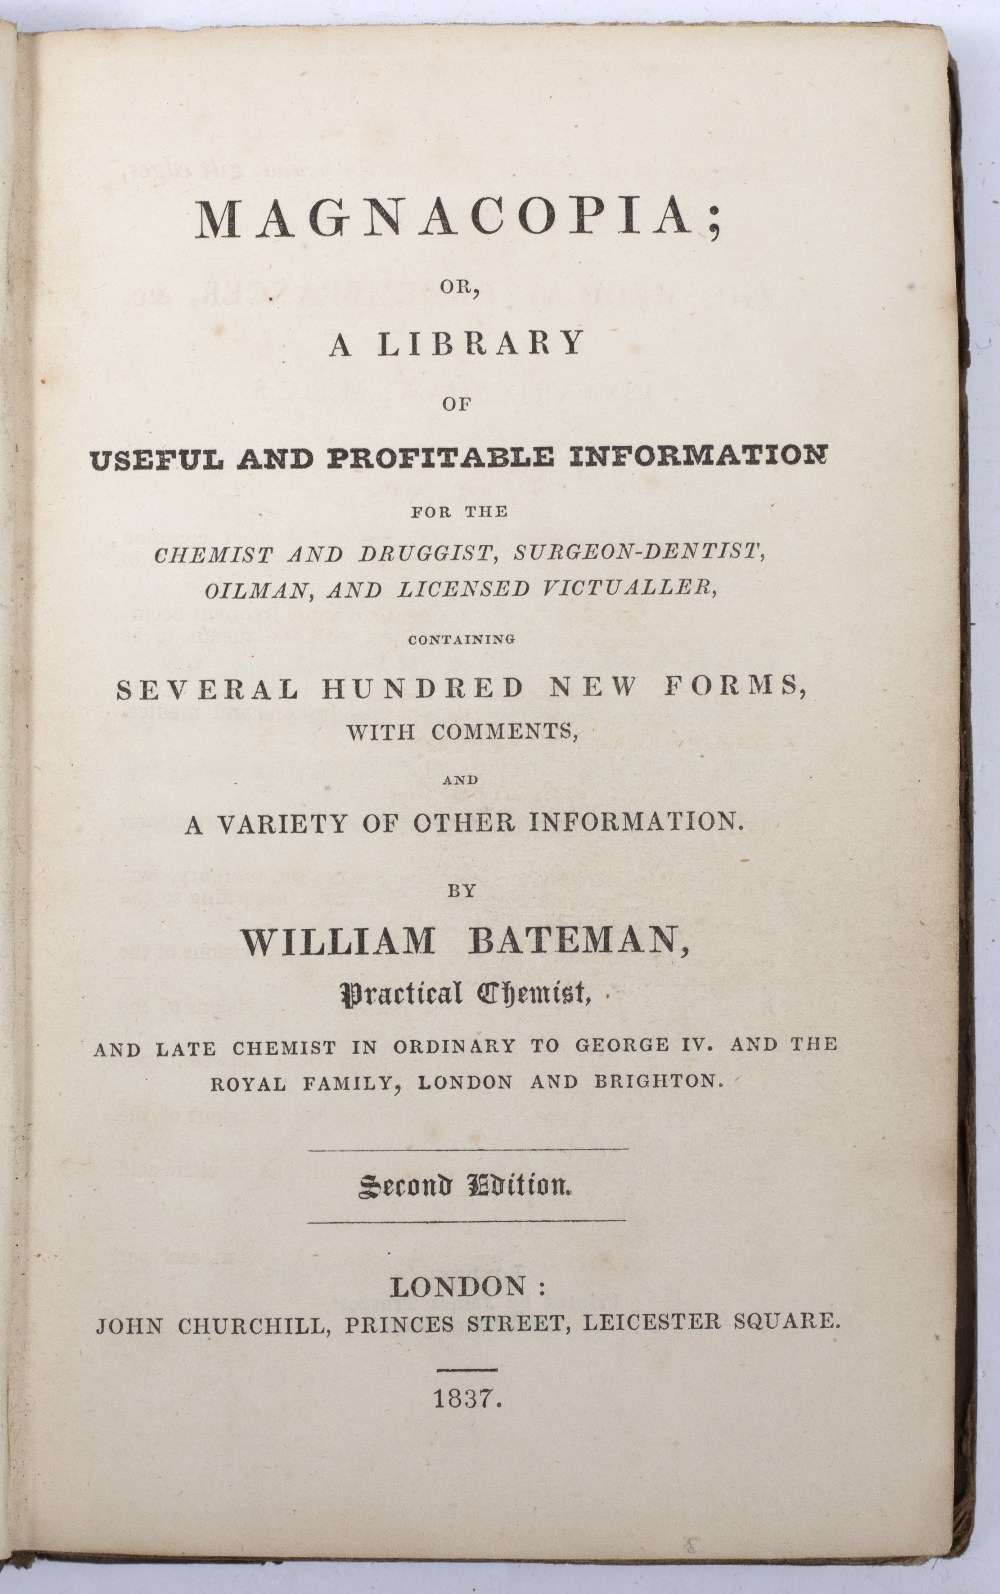 BATEMAN, William, 'Magnacopia' or A Library of Useful and Profitable Information for the